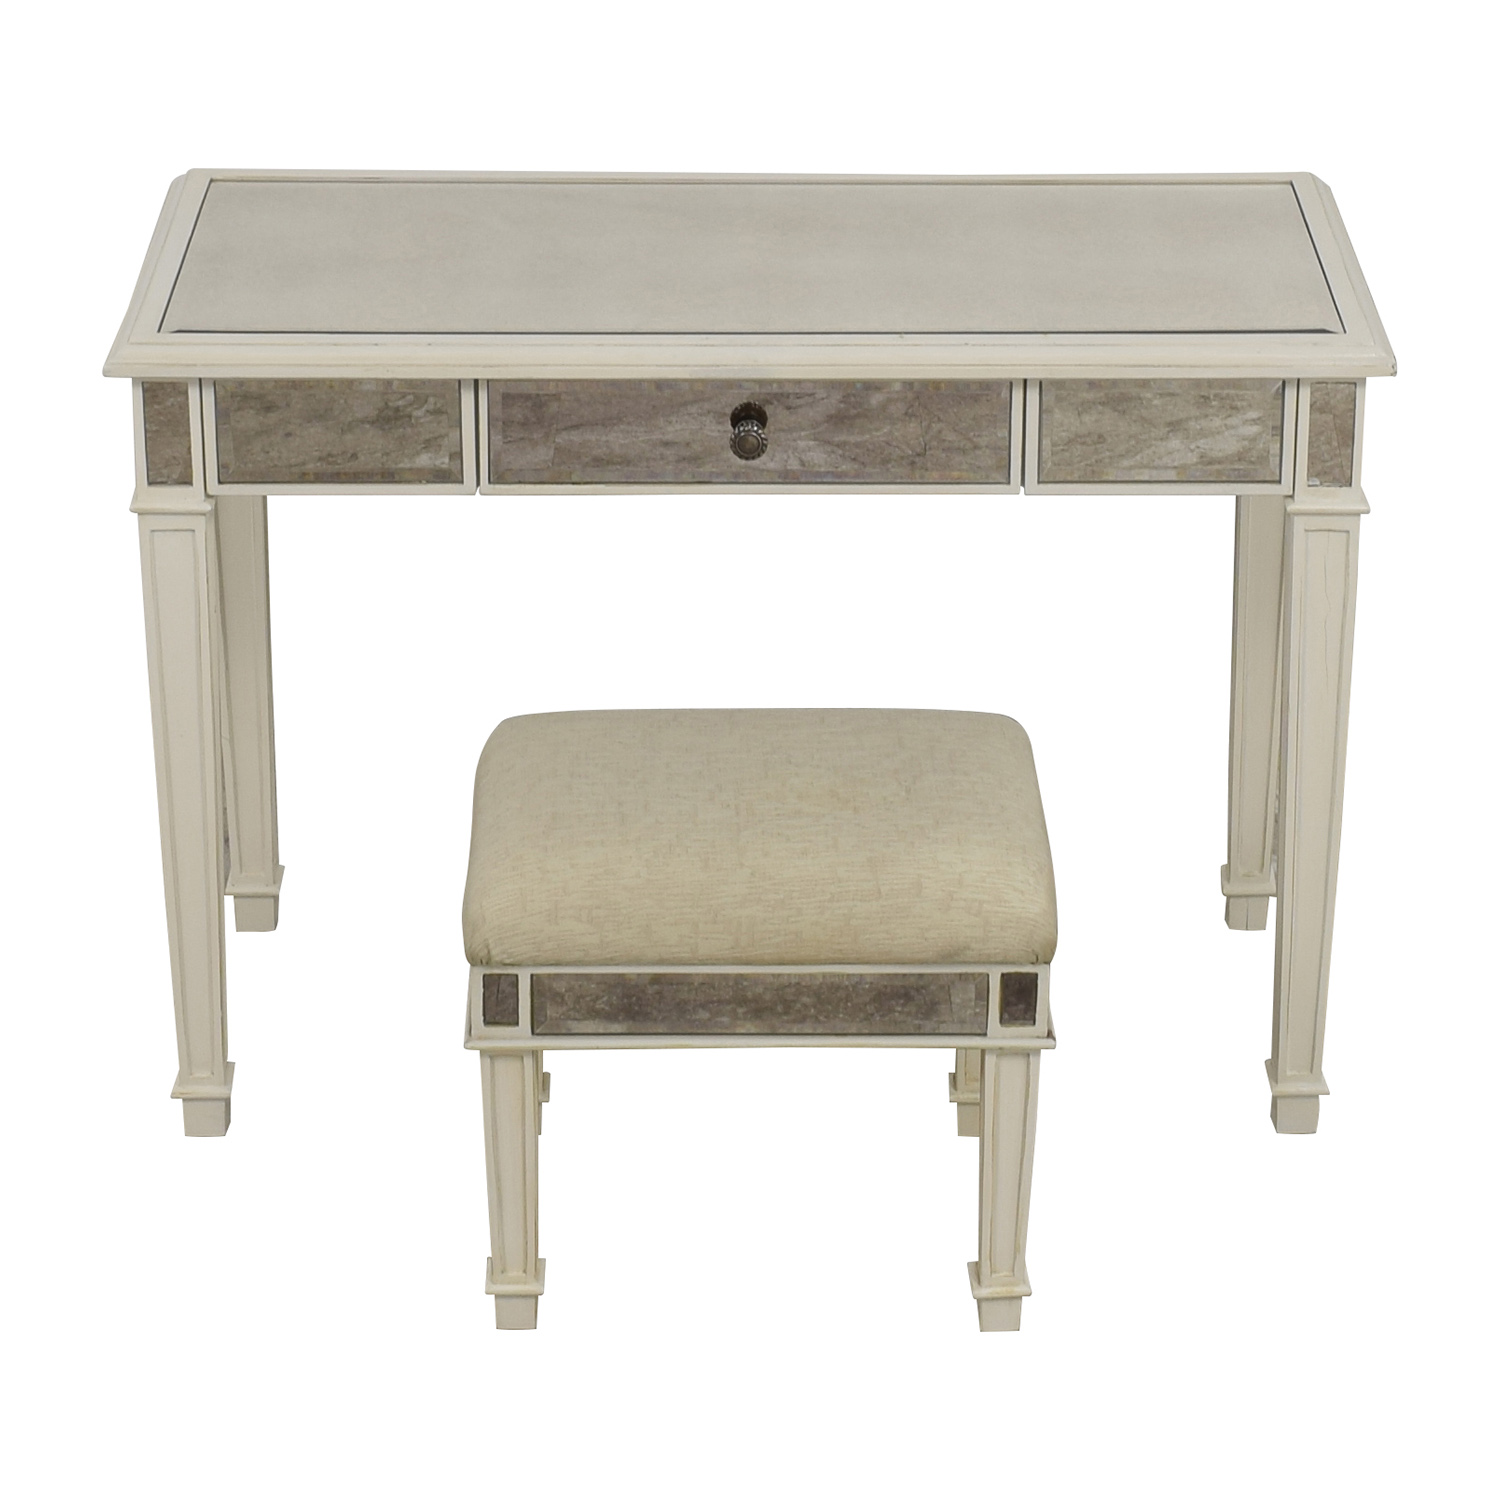 Pier 1 Imports Antique White Mirrored Vanity Table and Stool / Utility Tables